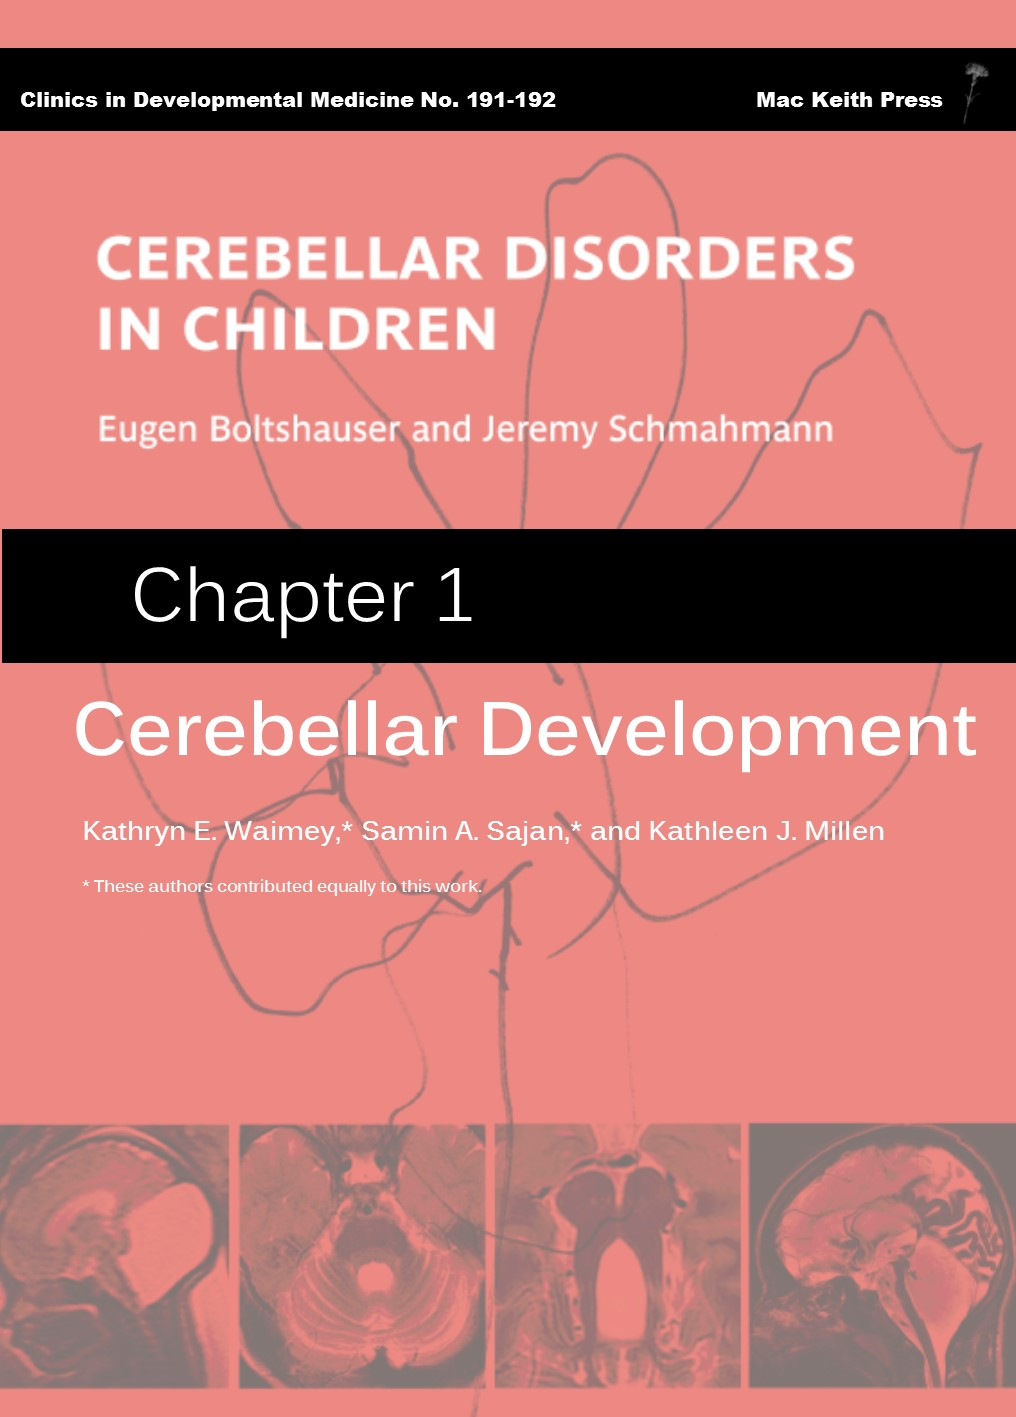 Cerebellar Disorders in Children Chapter 1 cover